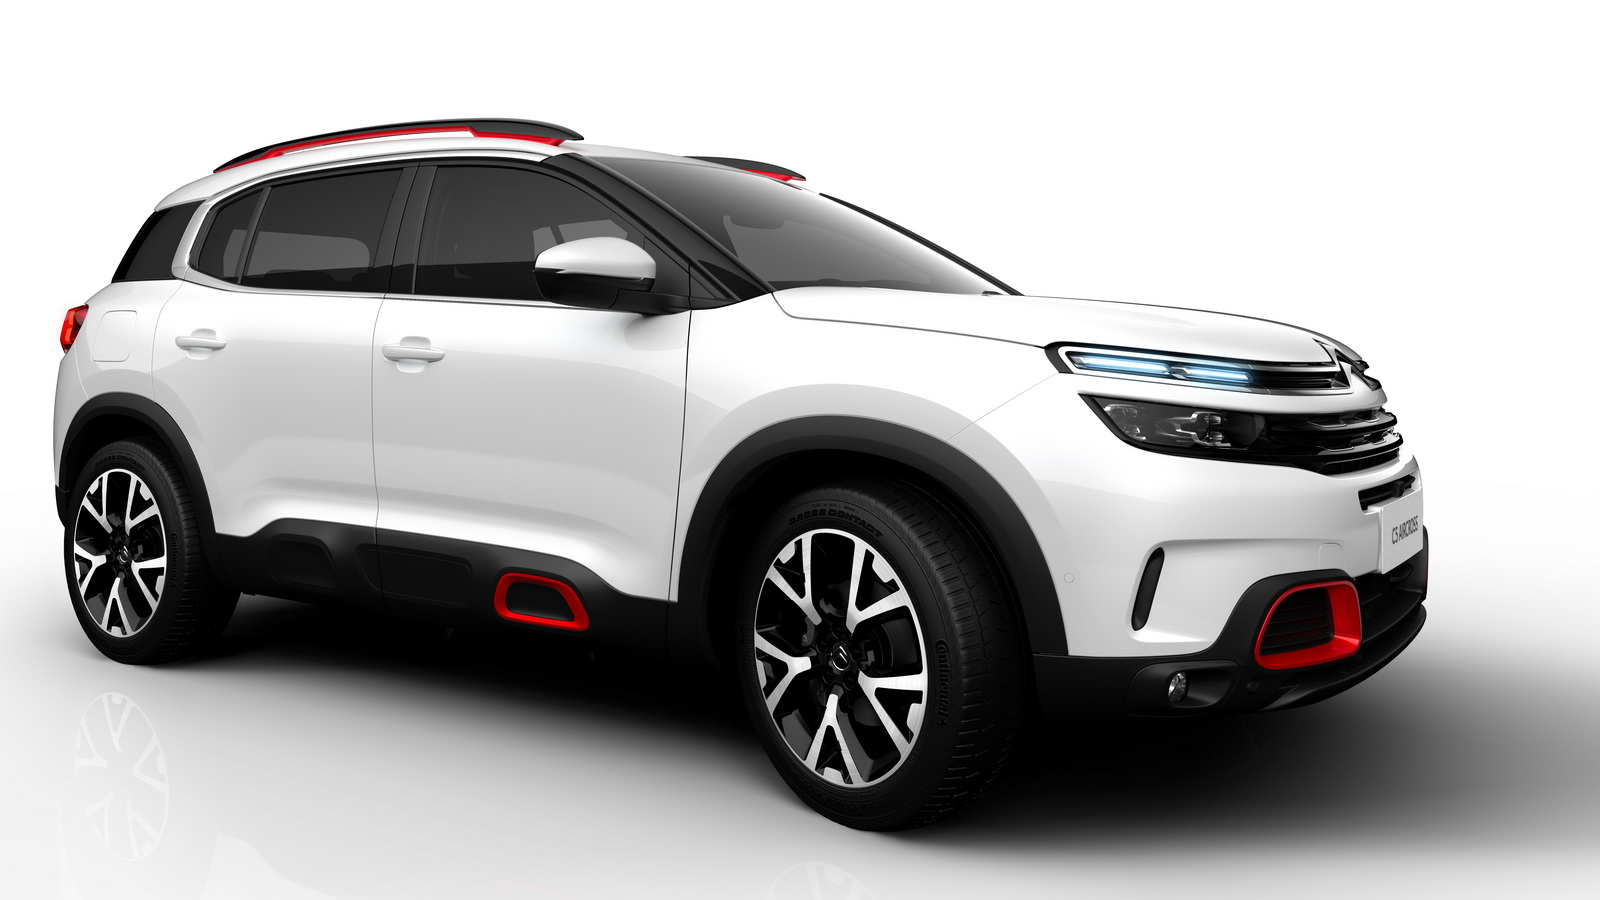 2018 citroen c5 aircross officially revealed gets innovative hydraulic suspension